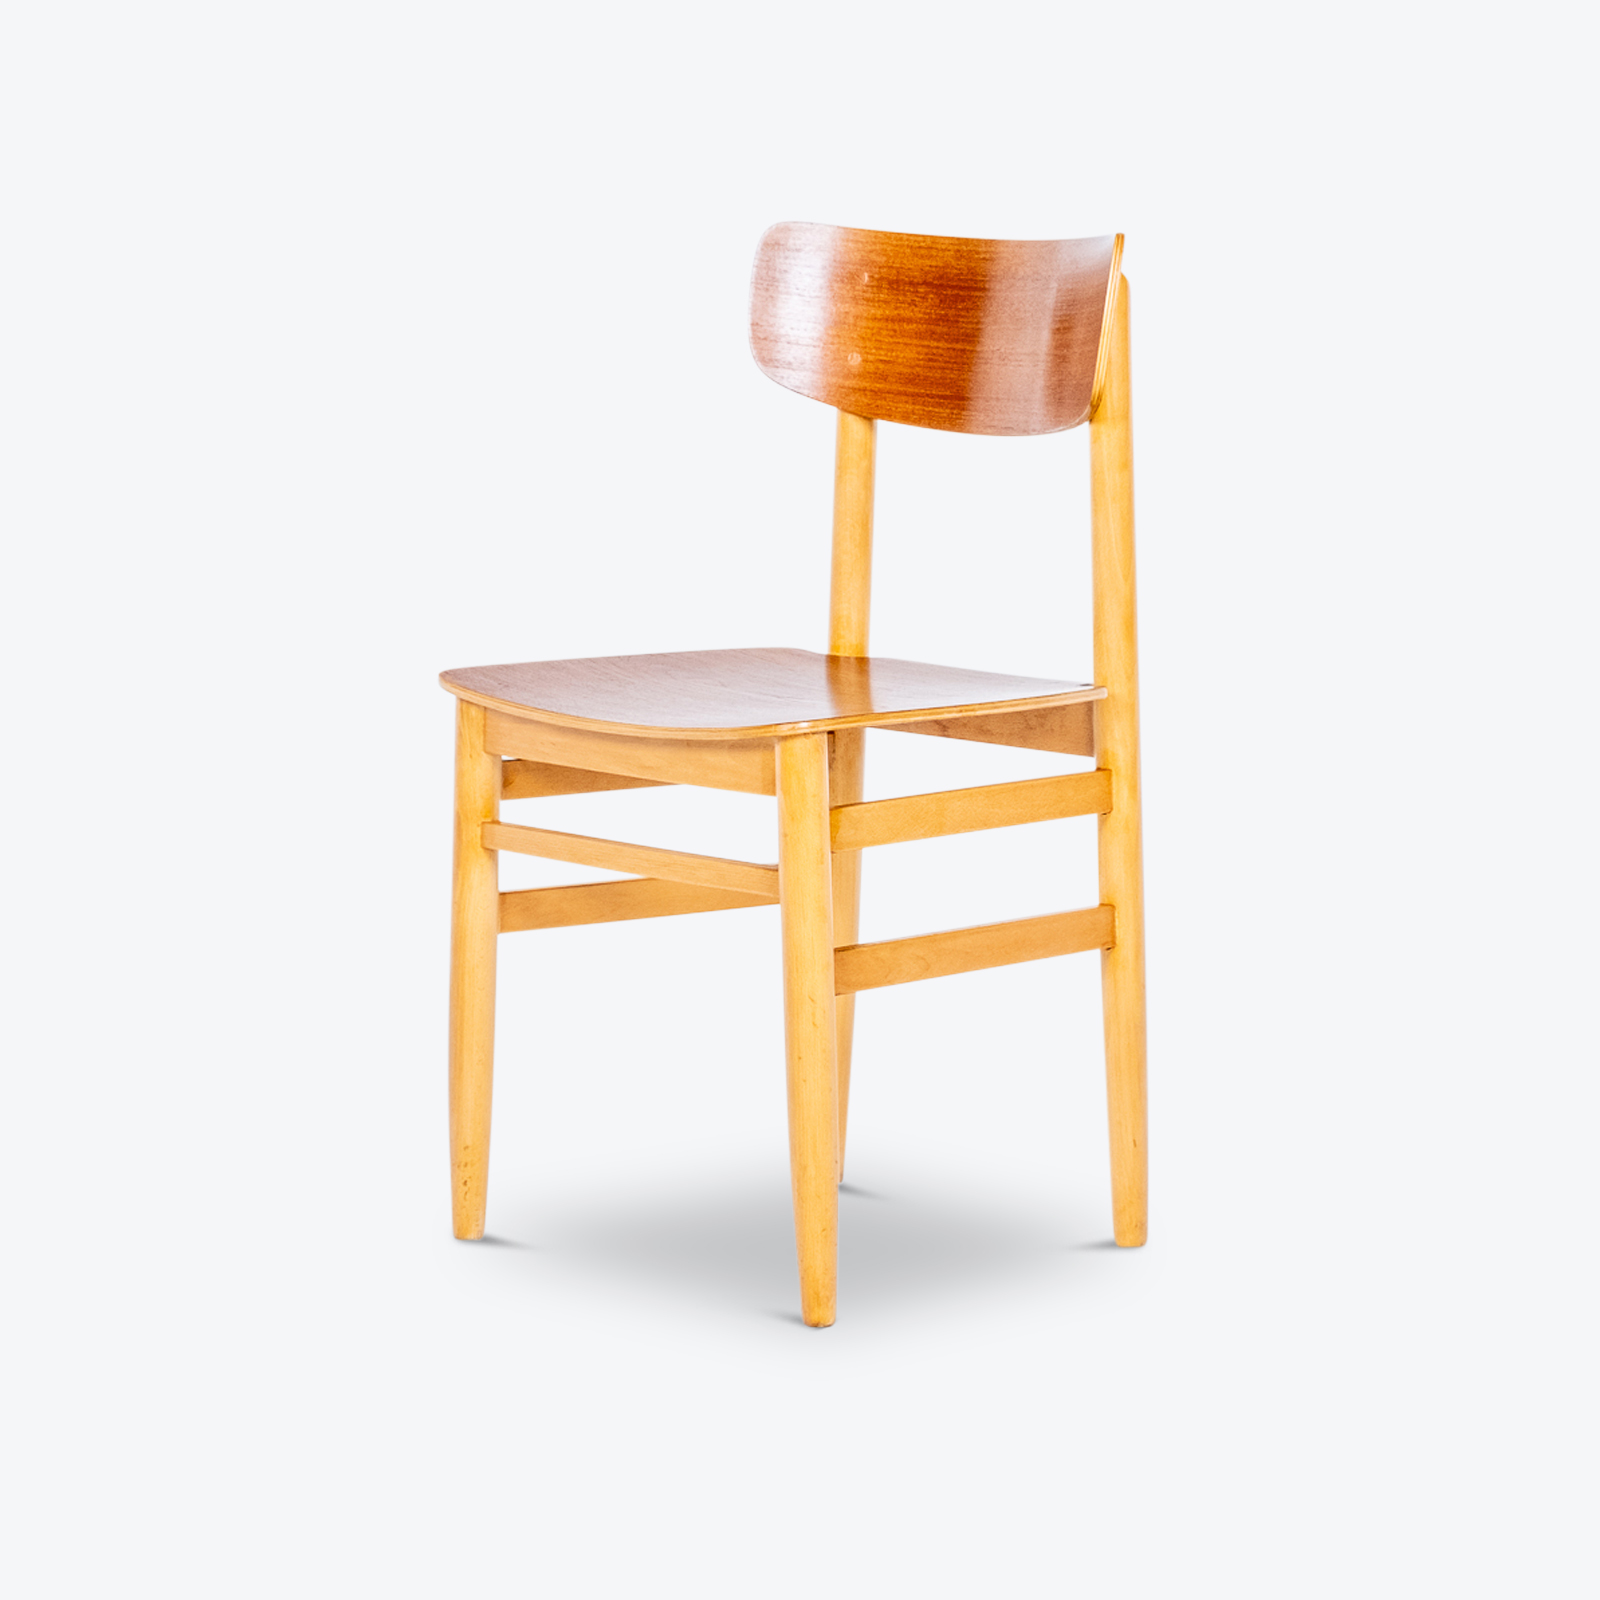 Set Of Four Dining Chairs In Beech And Oak, 1960s, Sweden 03 Hero